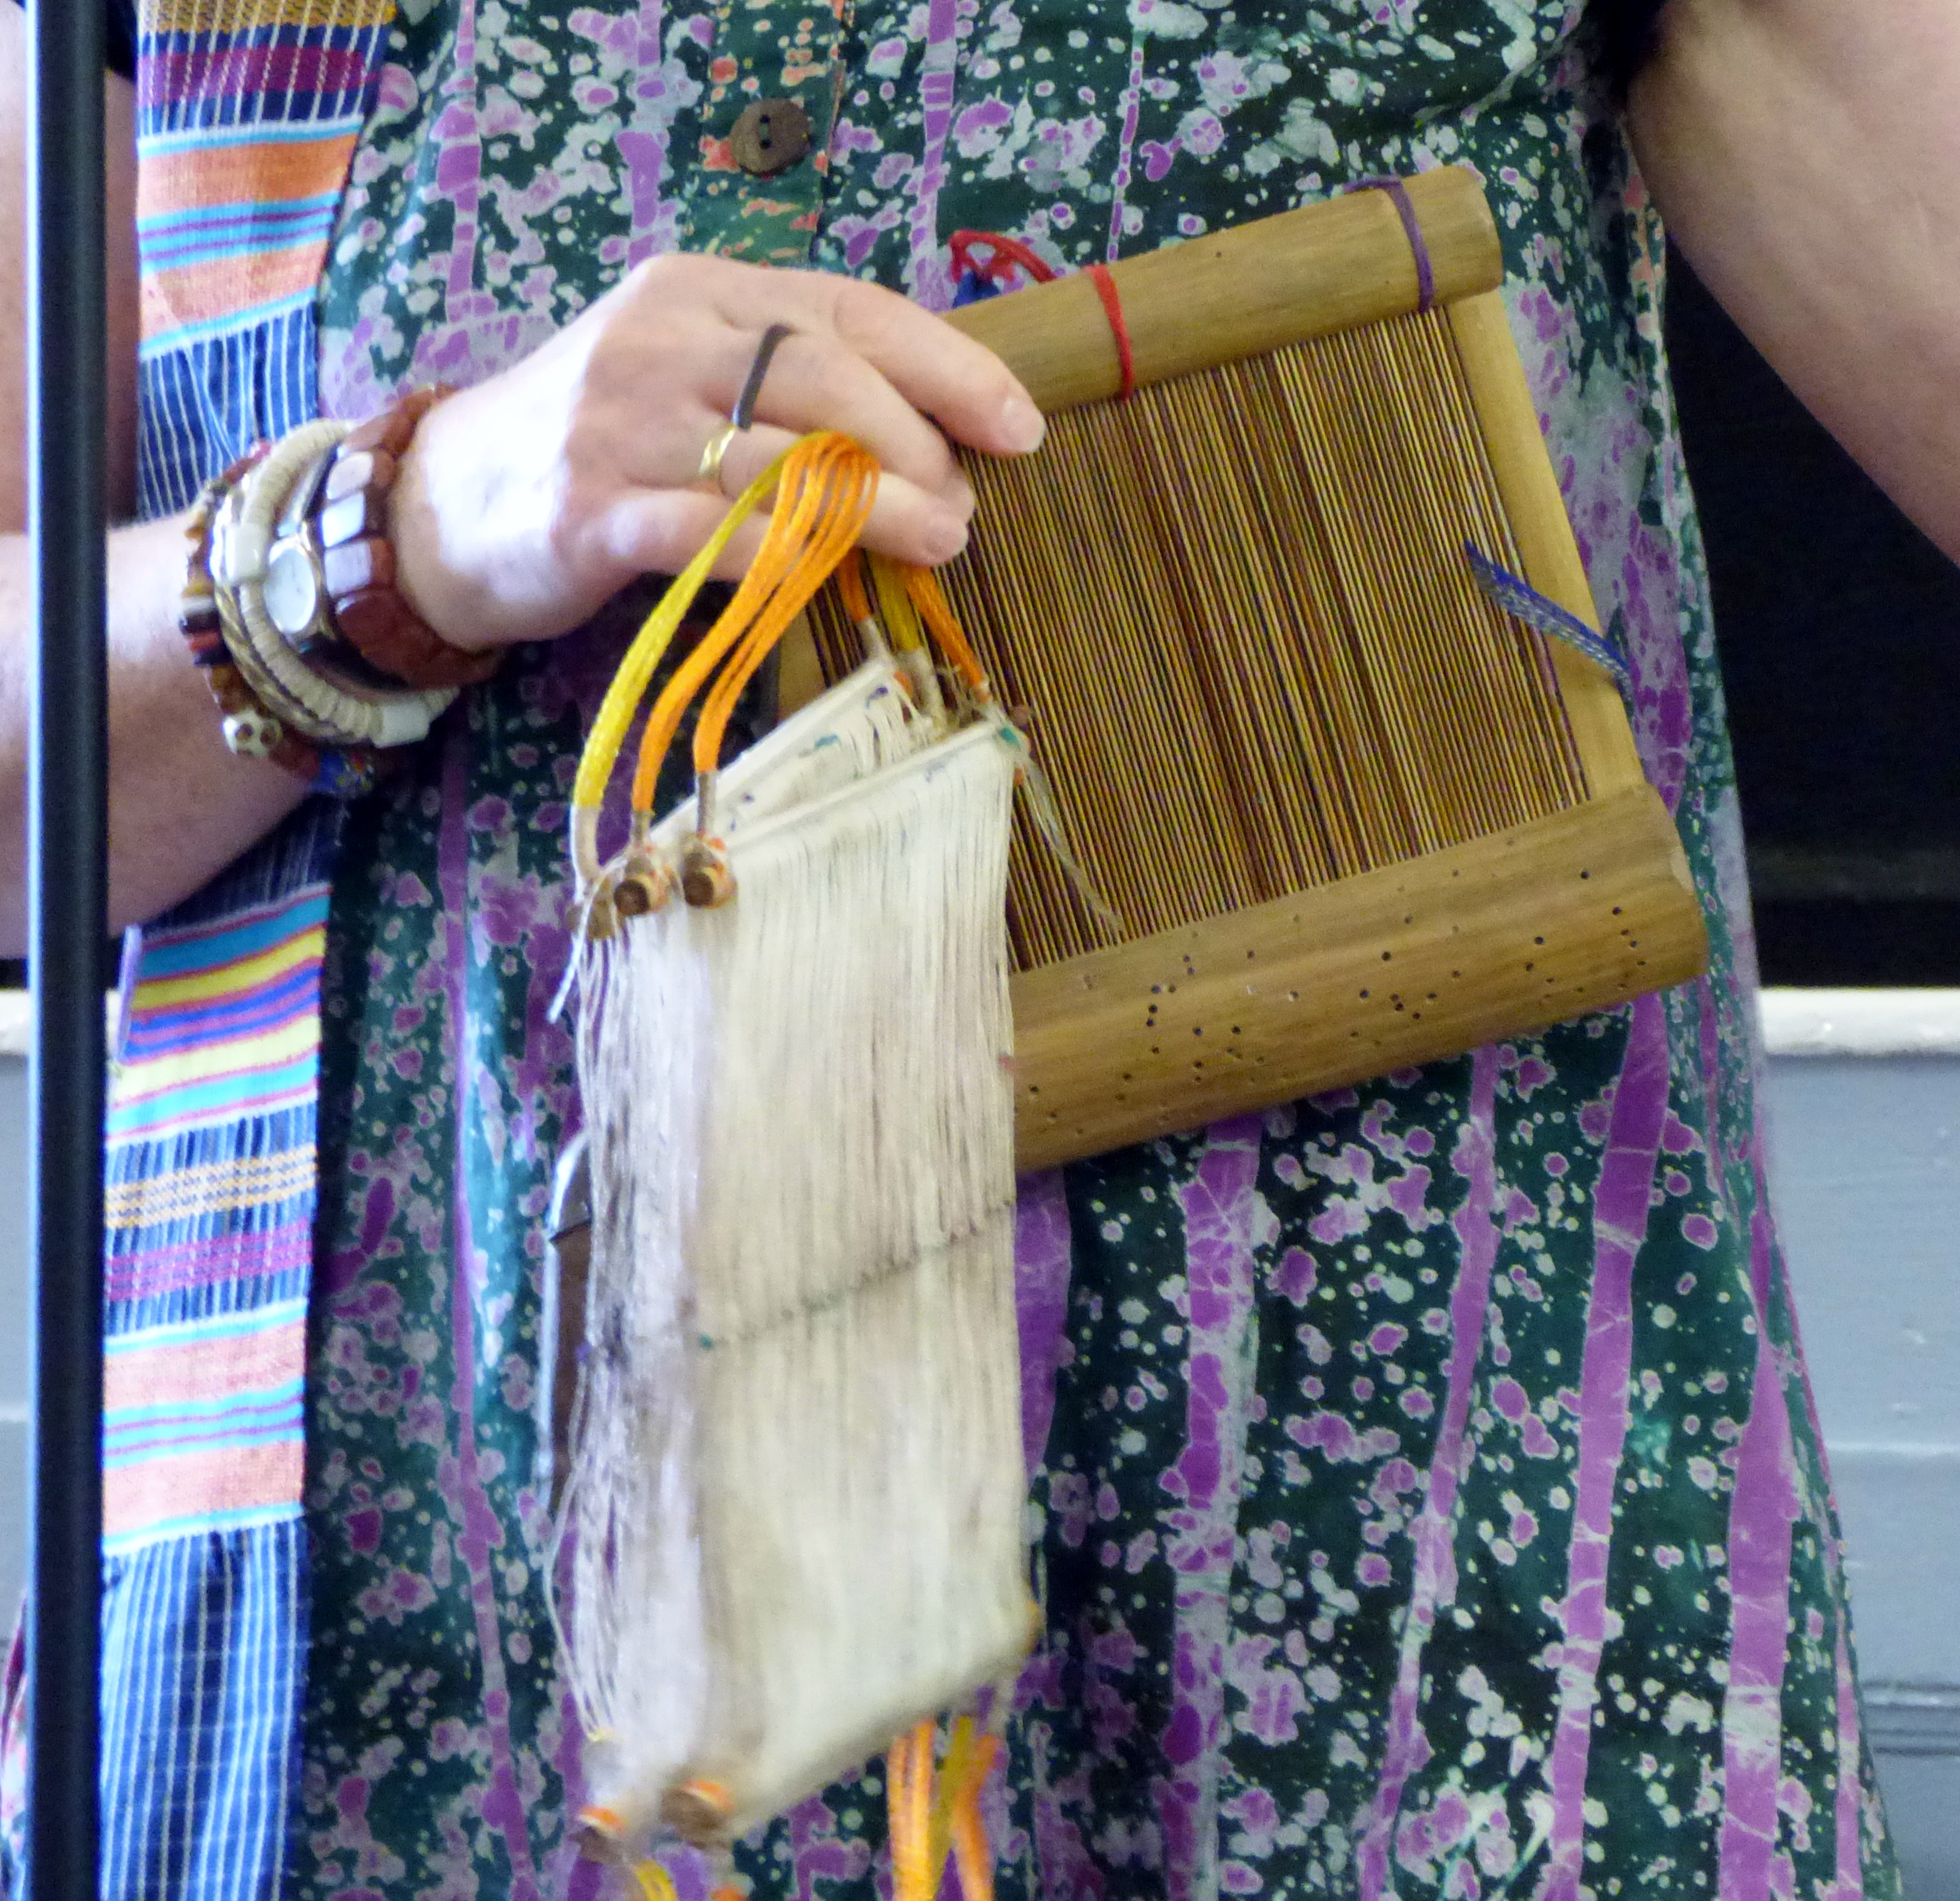 bamboo hand loom used to weave West African strip cloth